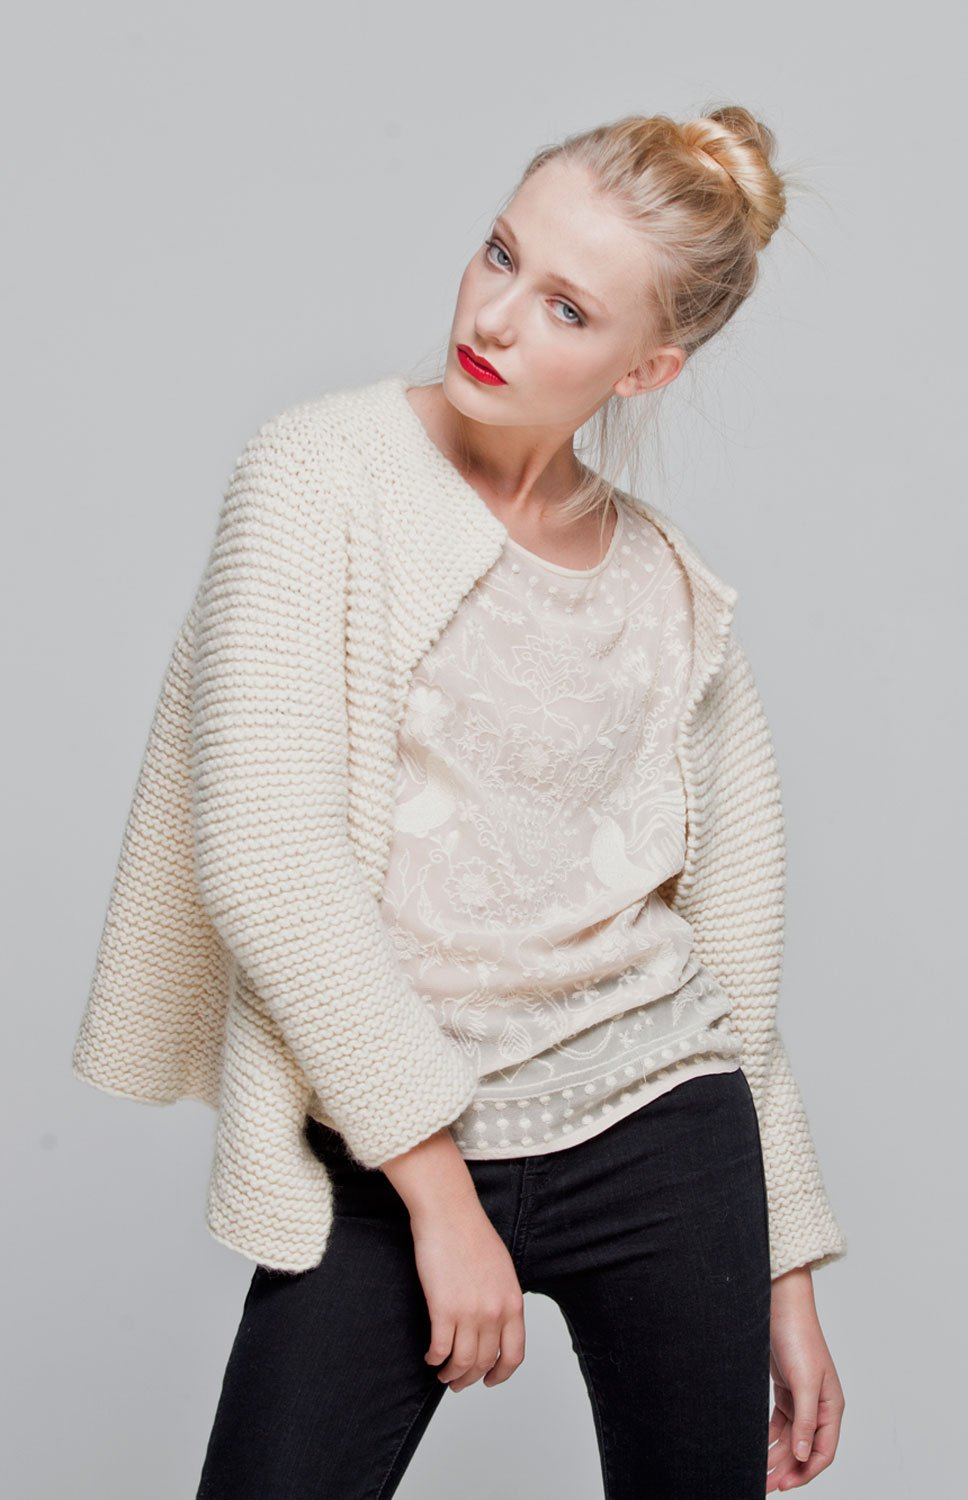 We are Knitters - Intermediate Level Knitting Kit - Martina Cardigan by We Are Knitters (Image #1)